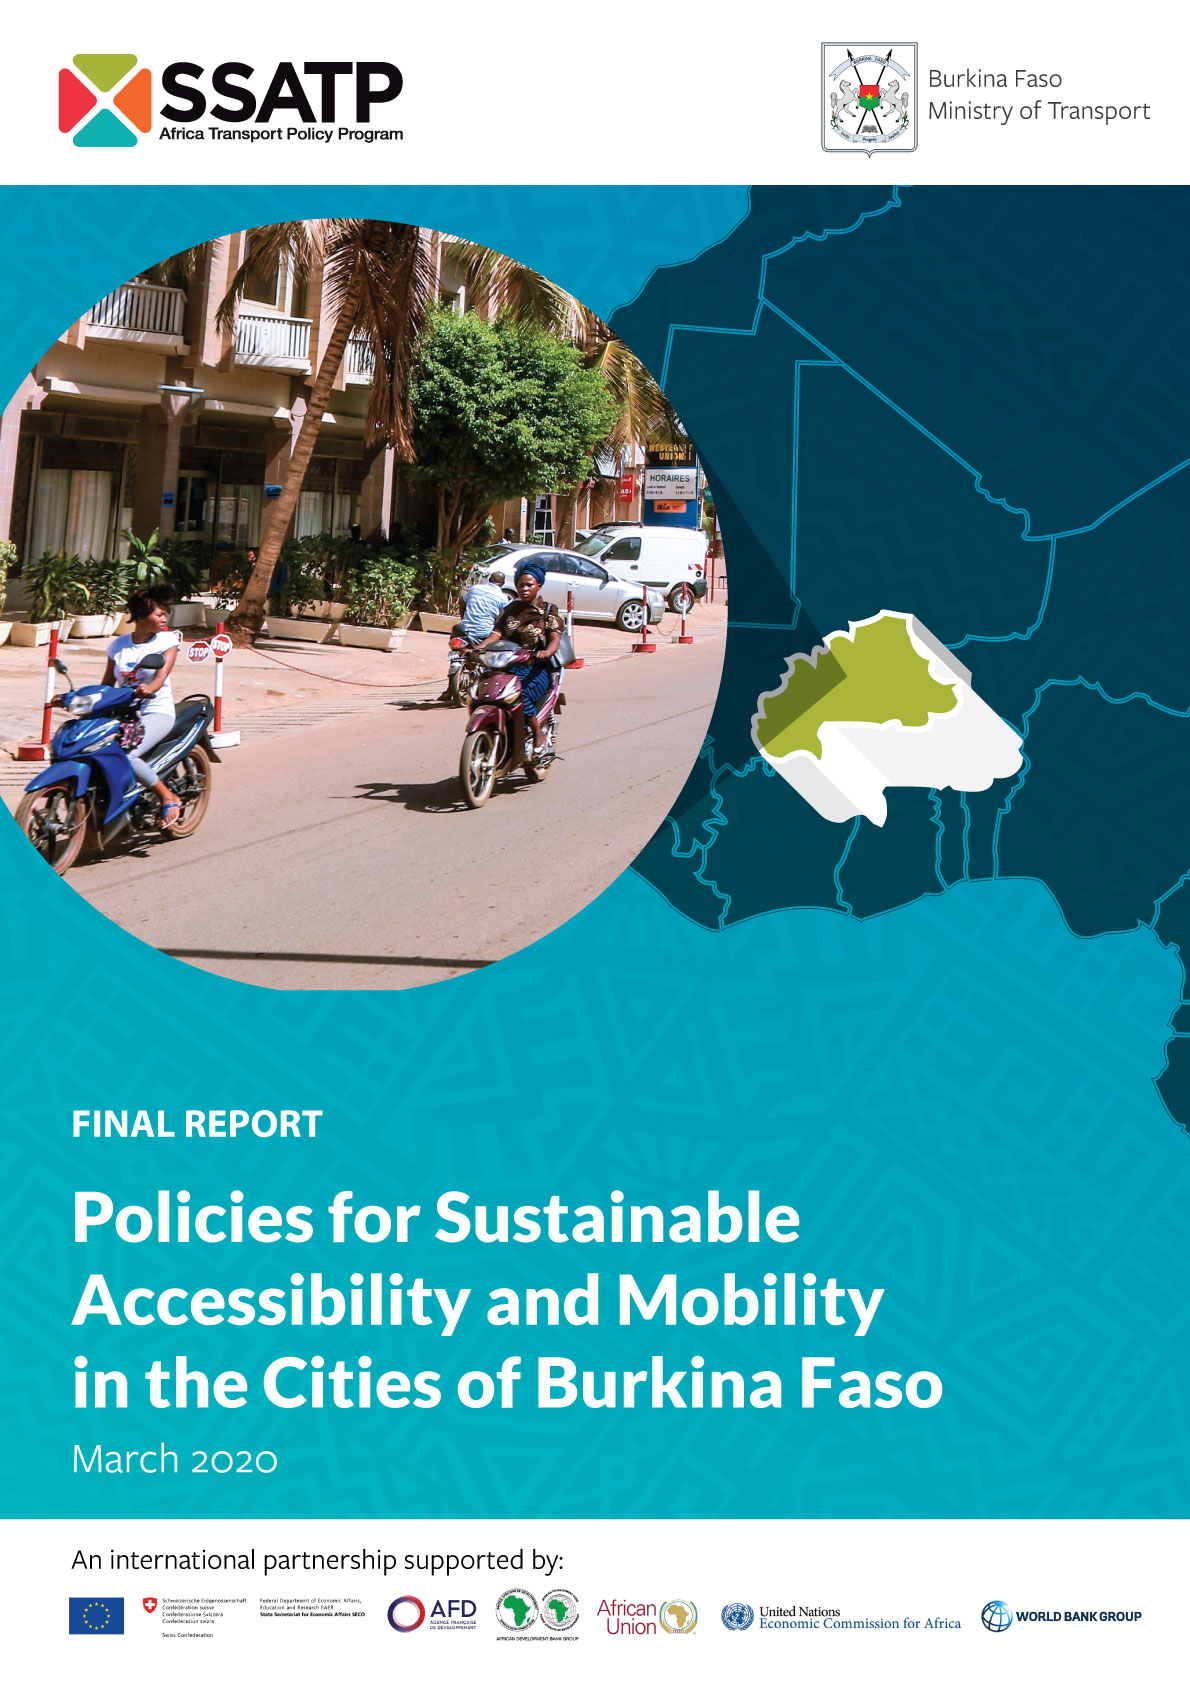 Policies for Sustainable Accessibility and Mobility in the Cities of Burkina Faso - Policy & Strategy Paper